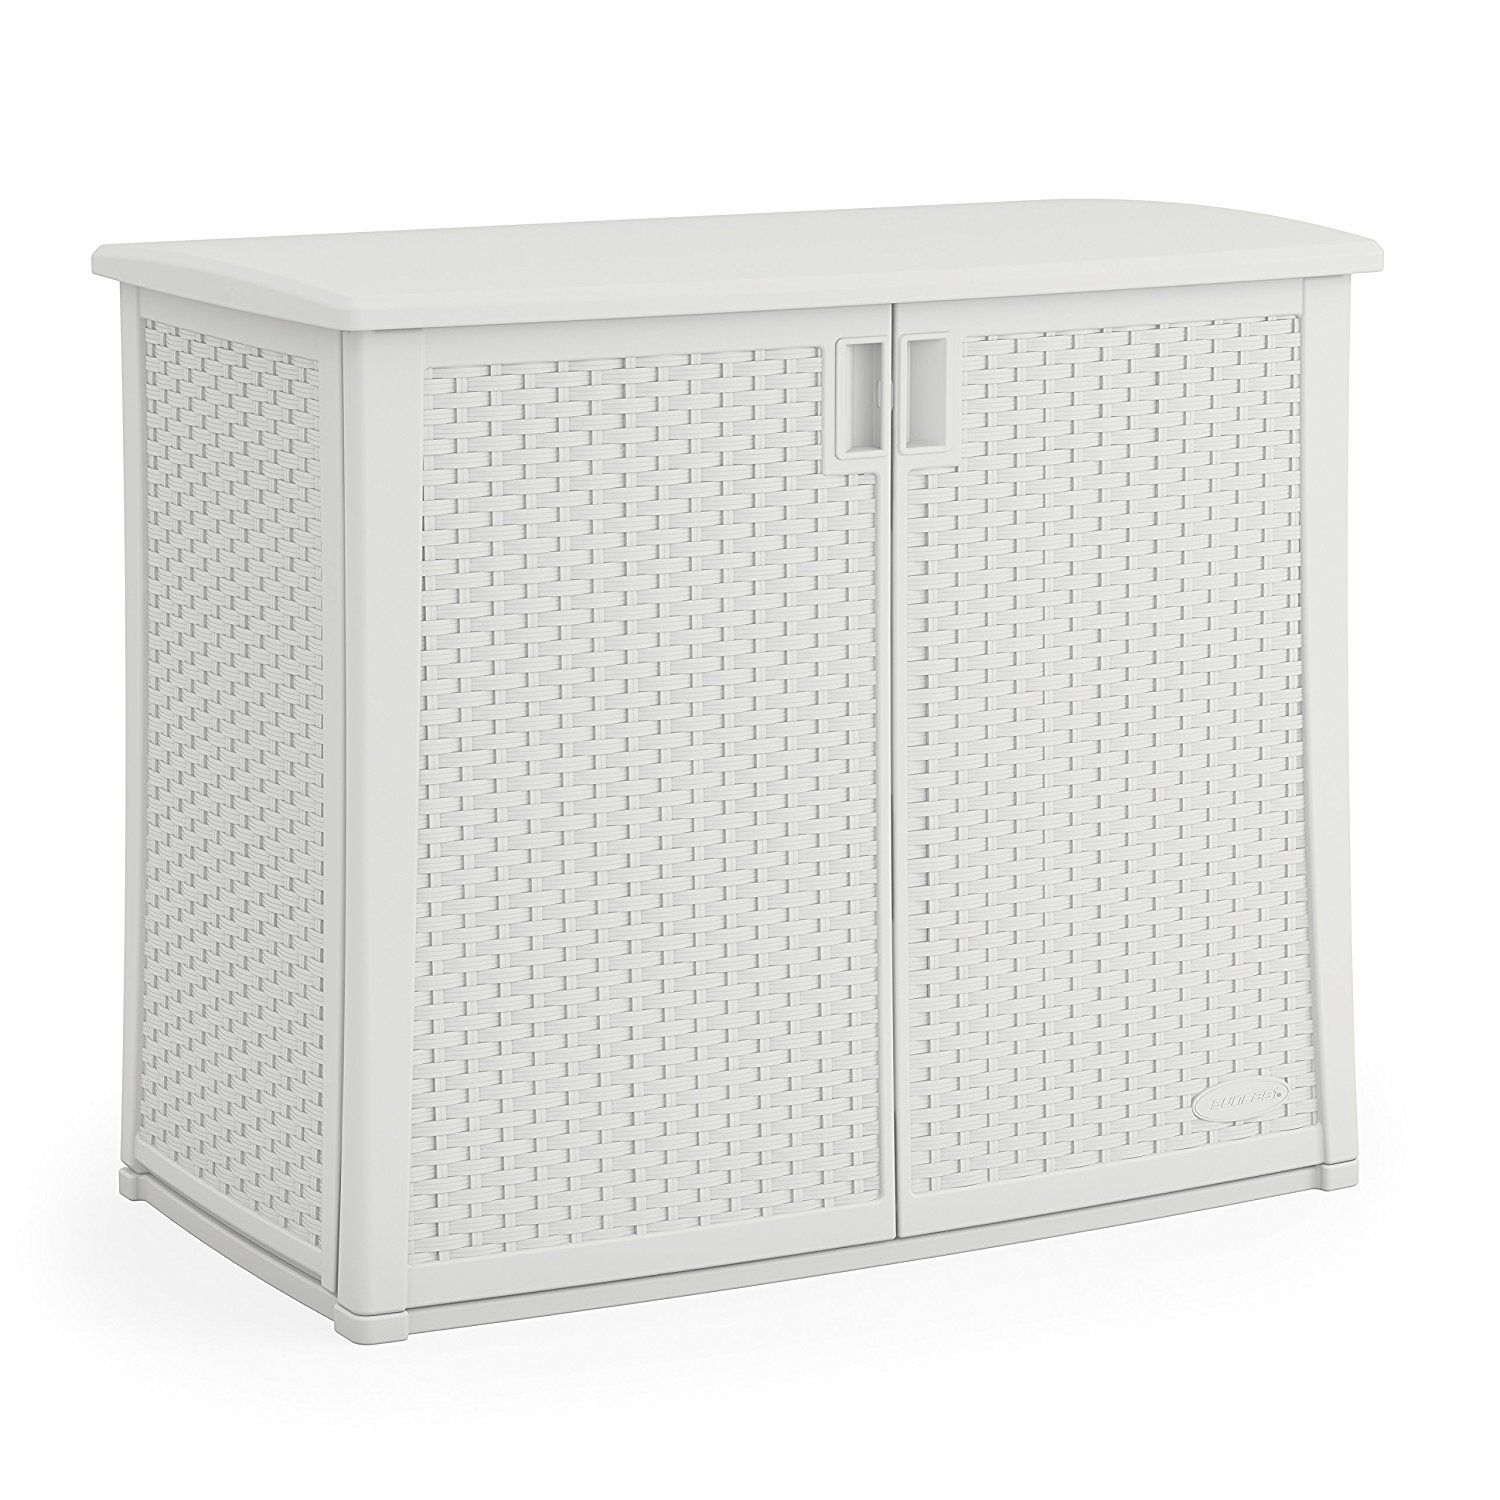 "Suncast BMOC4100WD Elements Outdoor 40"" Wide Cabinet"